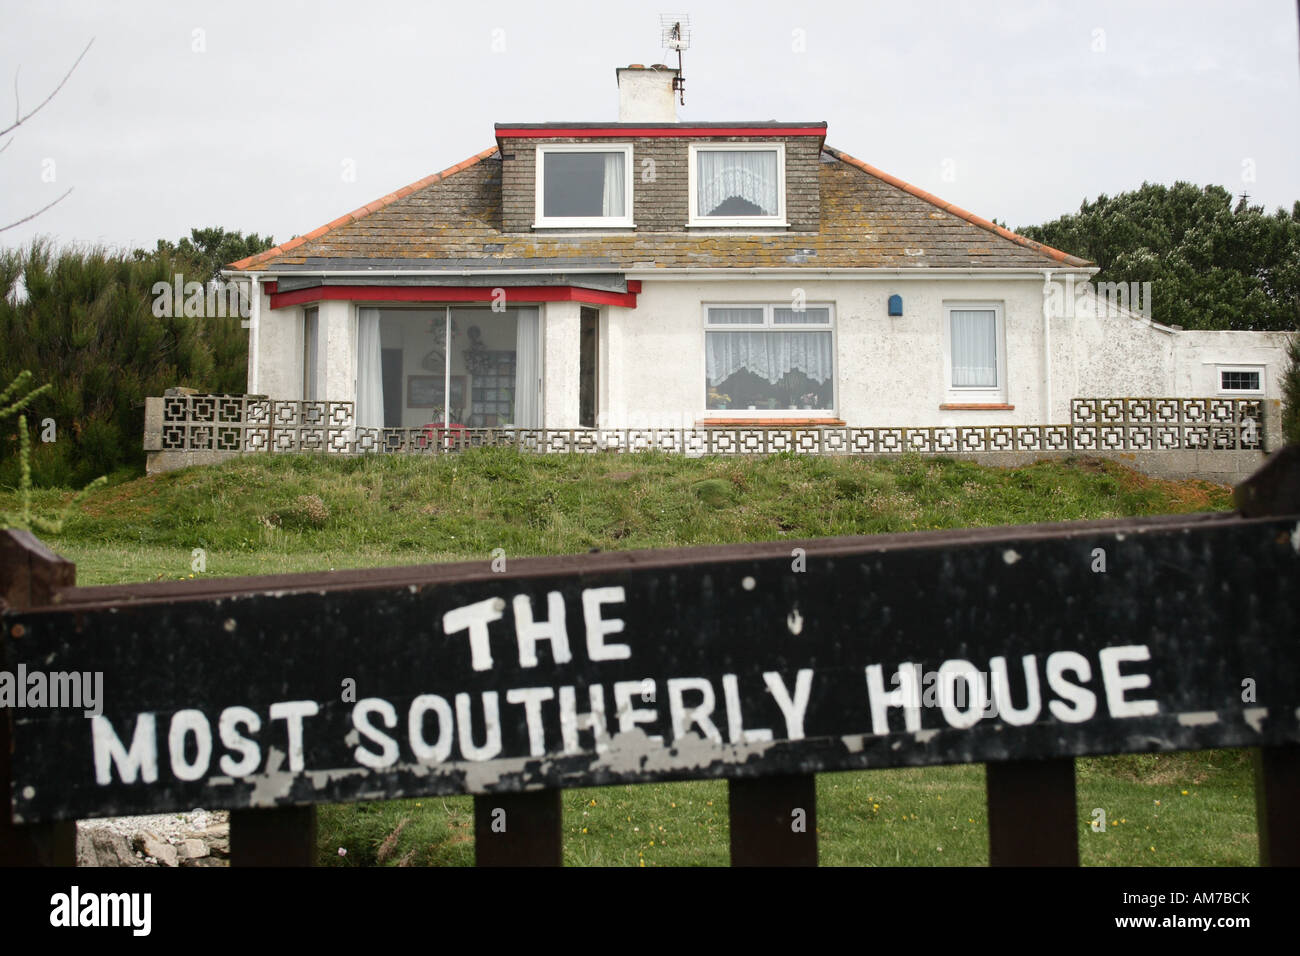 The most southerly house at the Lizard, Cornwall, UK. - Stock Image